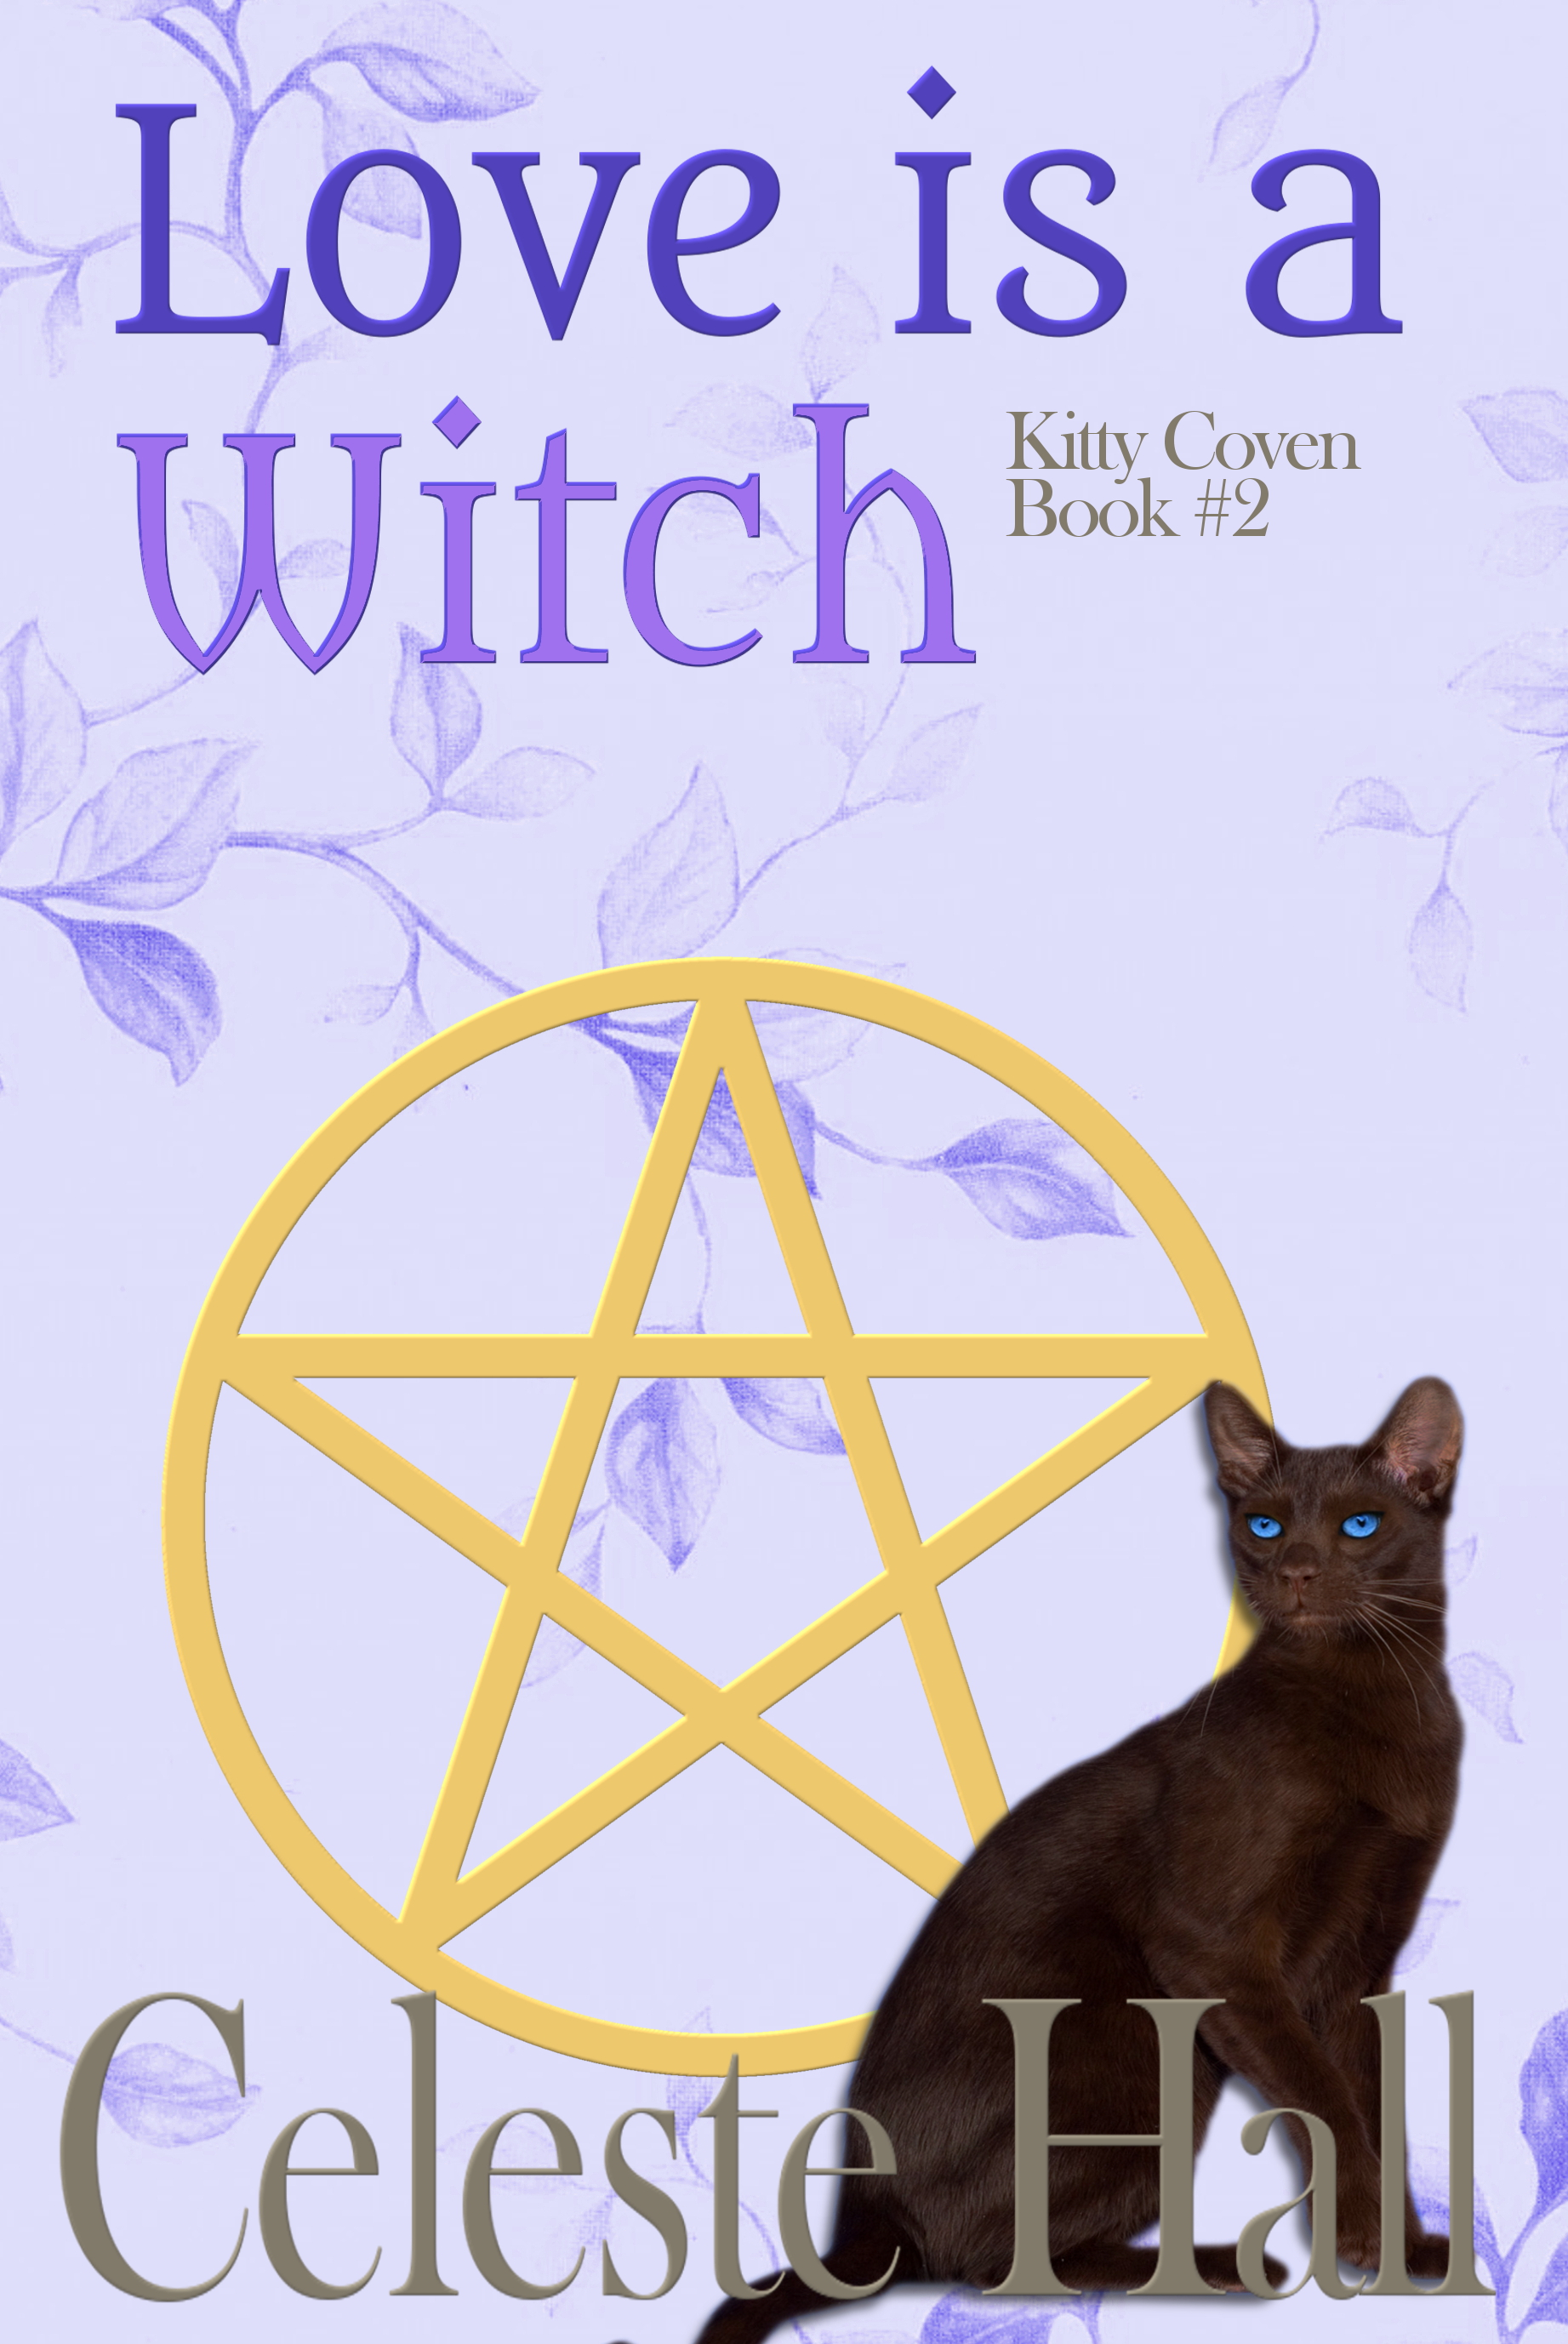 Love is a witch: the kitty coven series, book 2